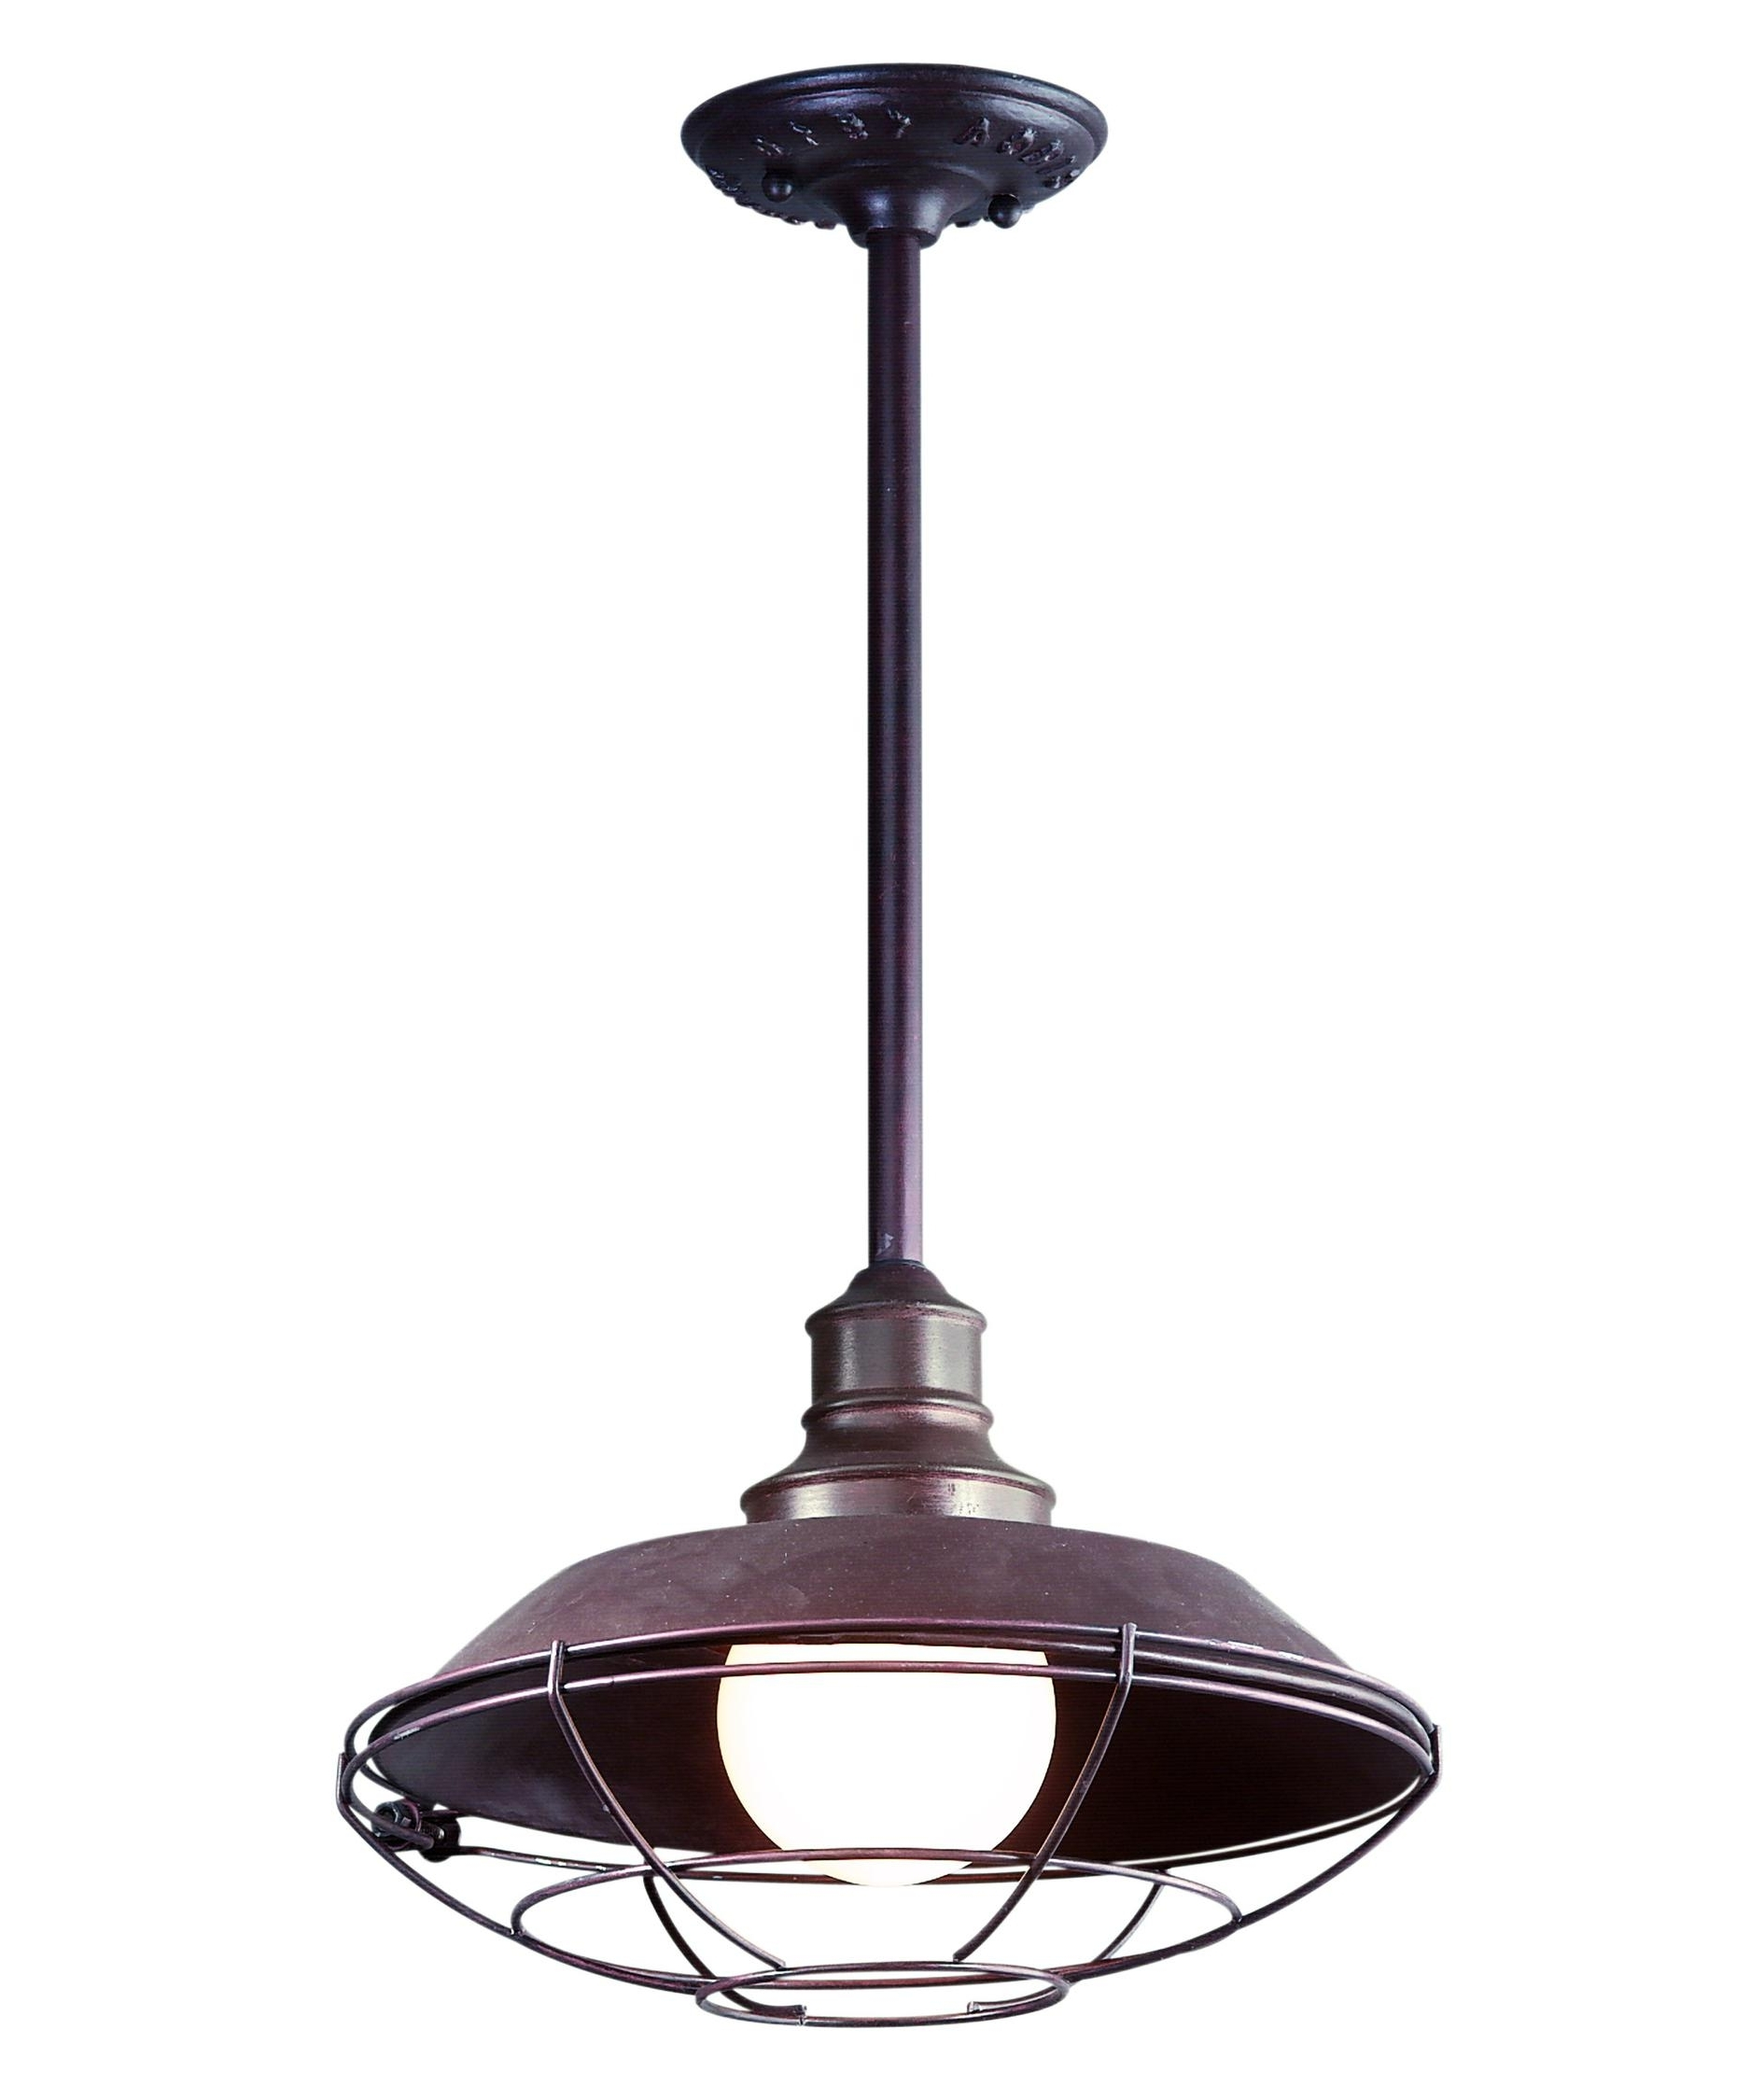 Troy Lighting F9273 Circa 1910 12 Inch Wide 1 Light Outdoor Hanging With Regard To Popular Outdoor Hanging Ceiling Lights (View 18 of 20)